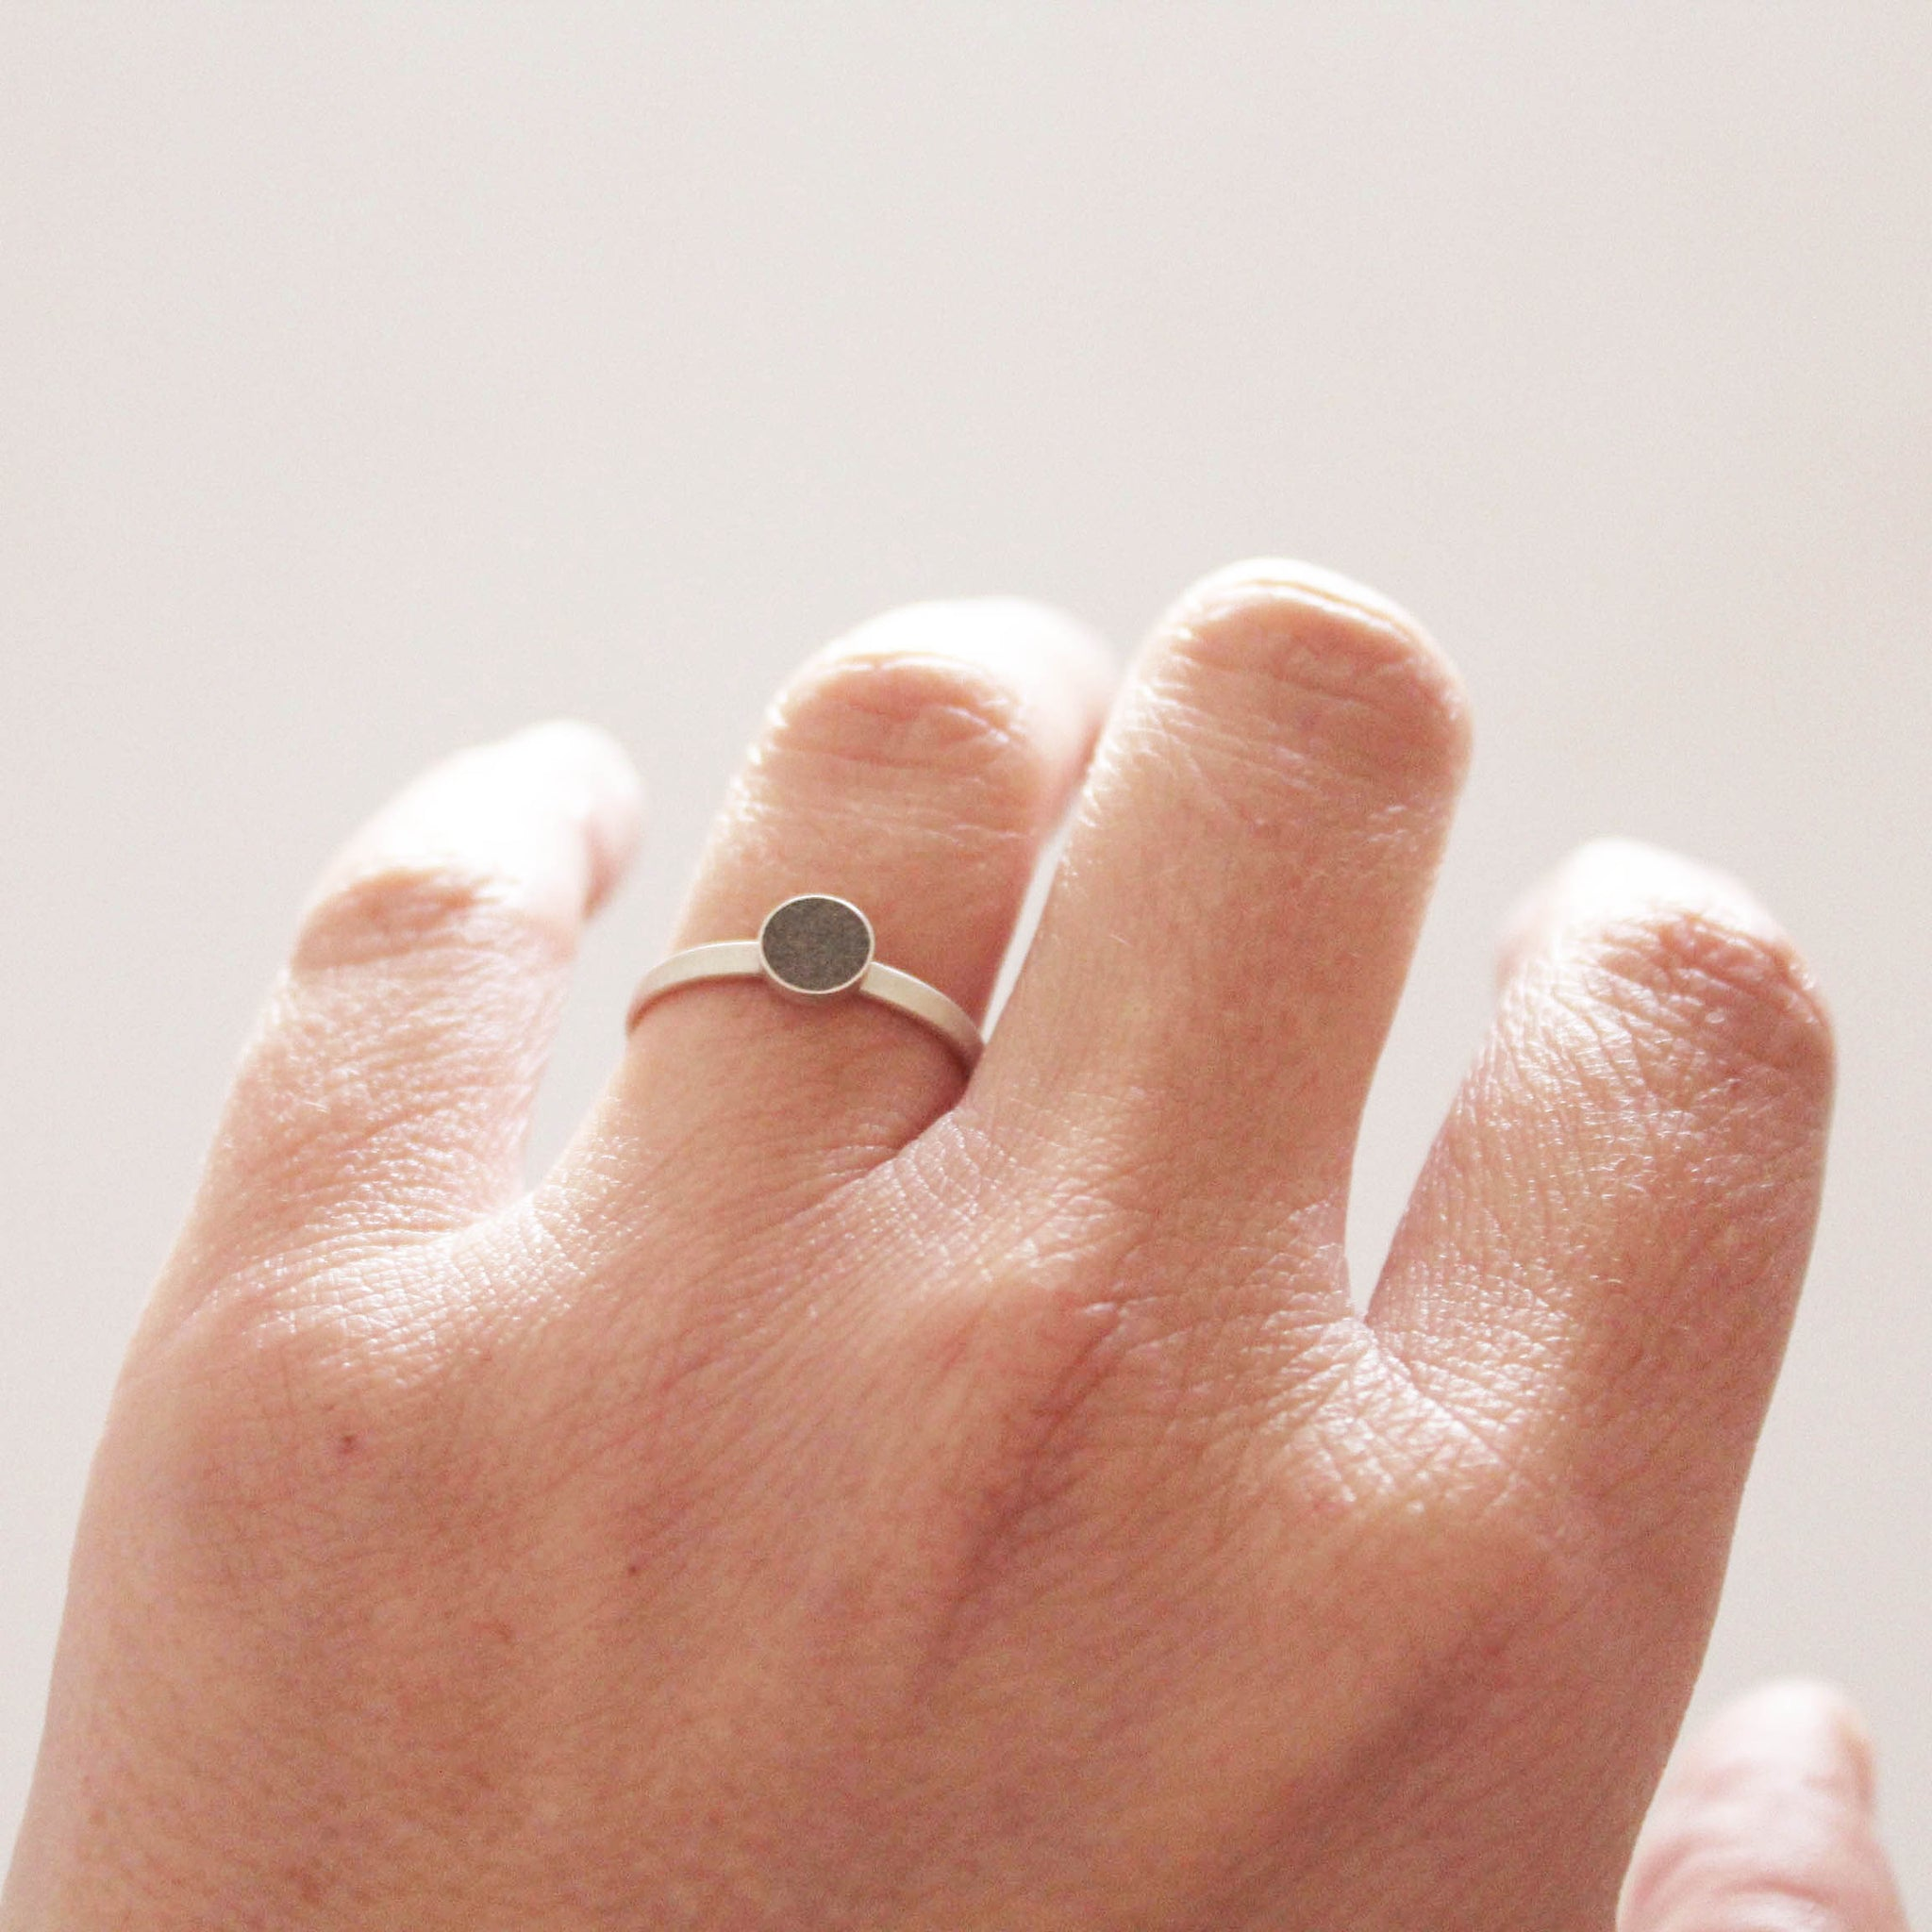 Minimal silver and concrete ring, BAARA Jewelry, little center stone  ring